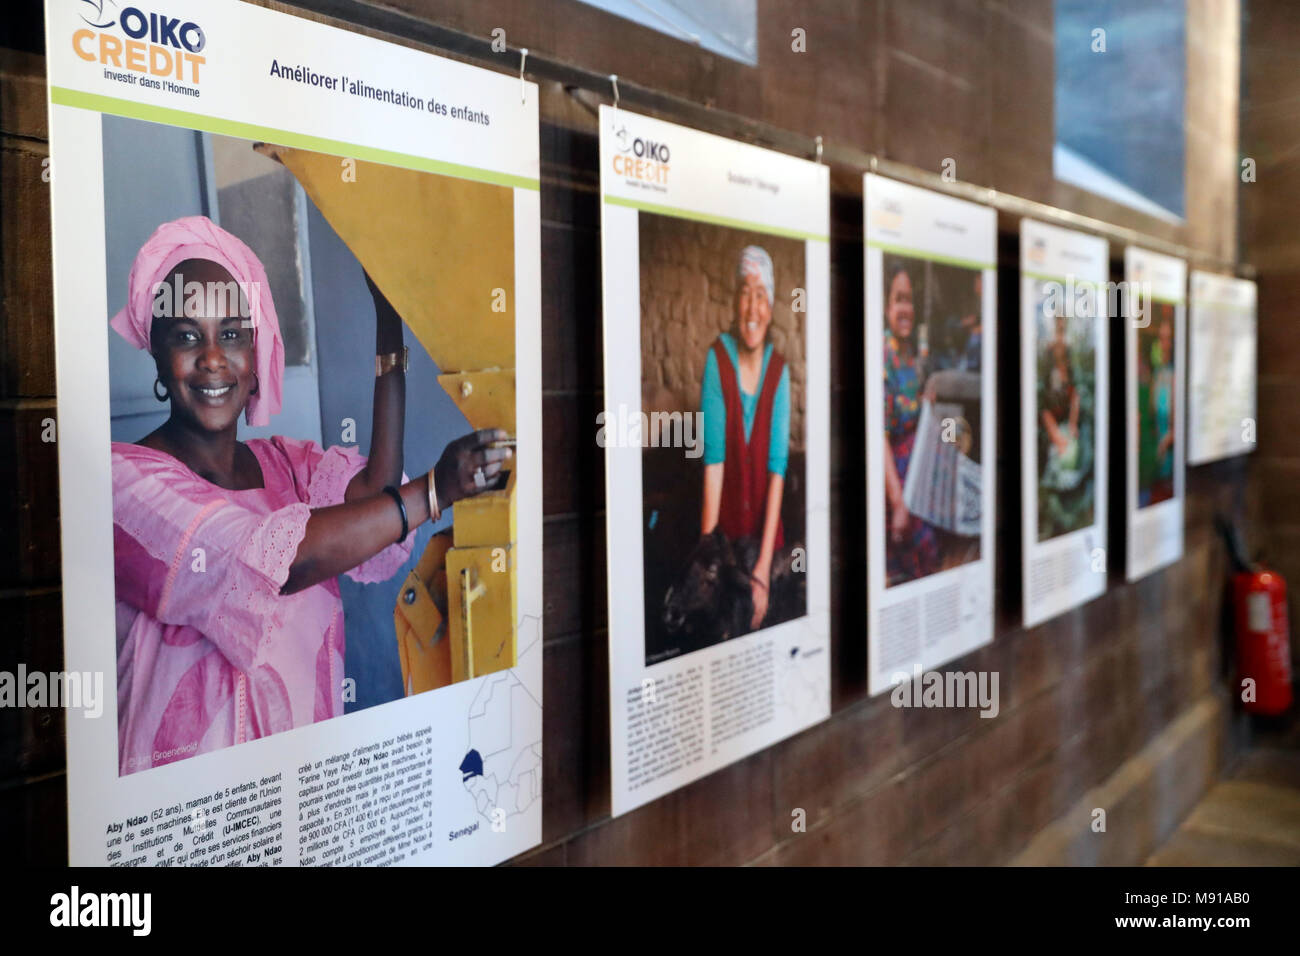 Oikocredit is a worldwide cooperative that promotes sustainable development by providing loans. Pictures exhibition.  Strasbourg. France. Stock Photo